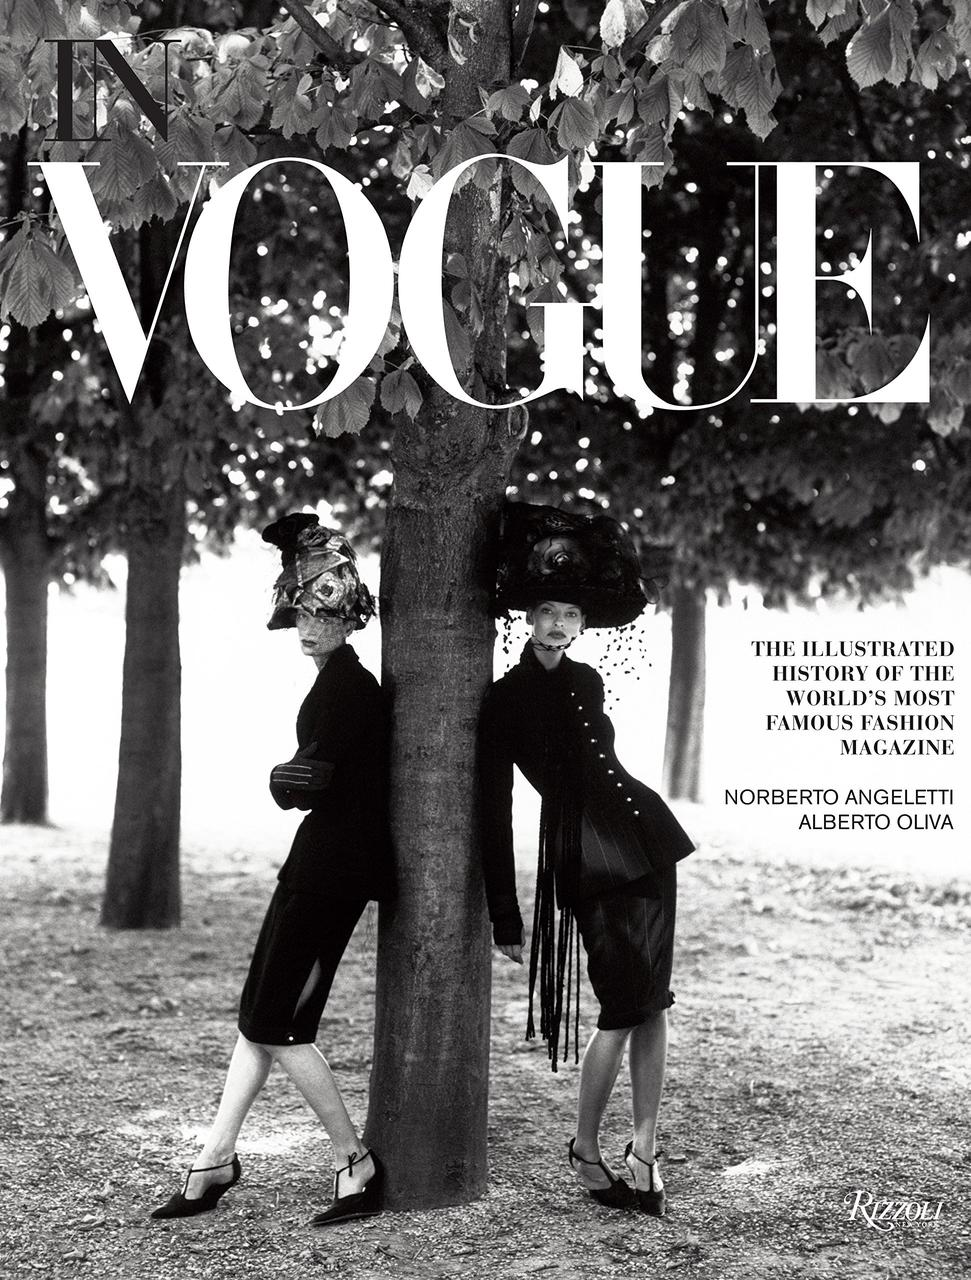 Книга   In Vogue : An Illustrated History of the World's Most Famous Fashion Magazine.